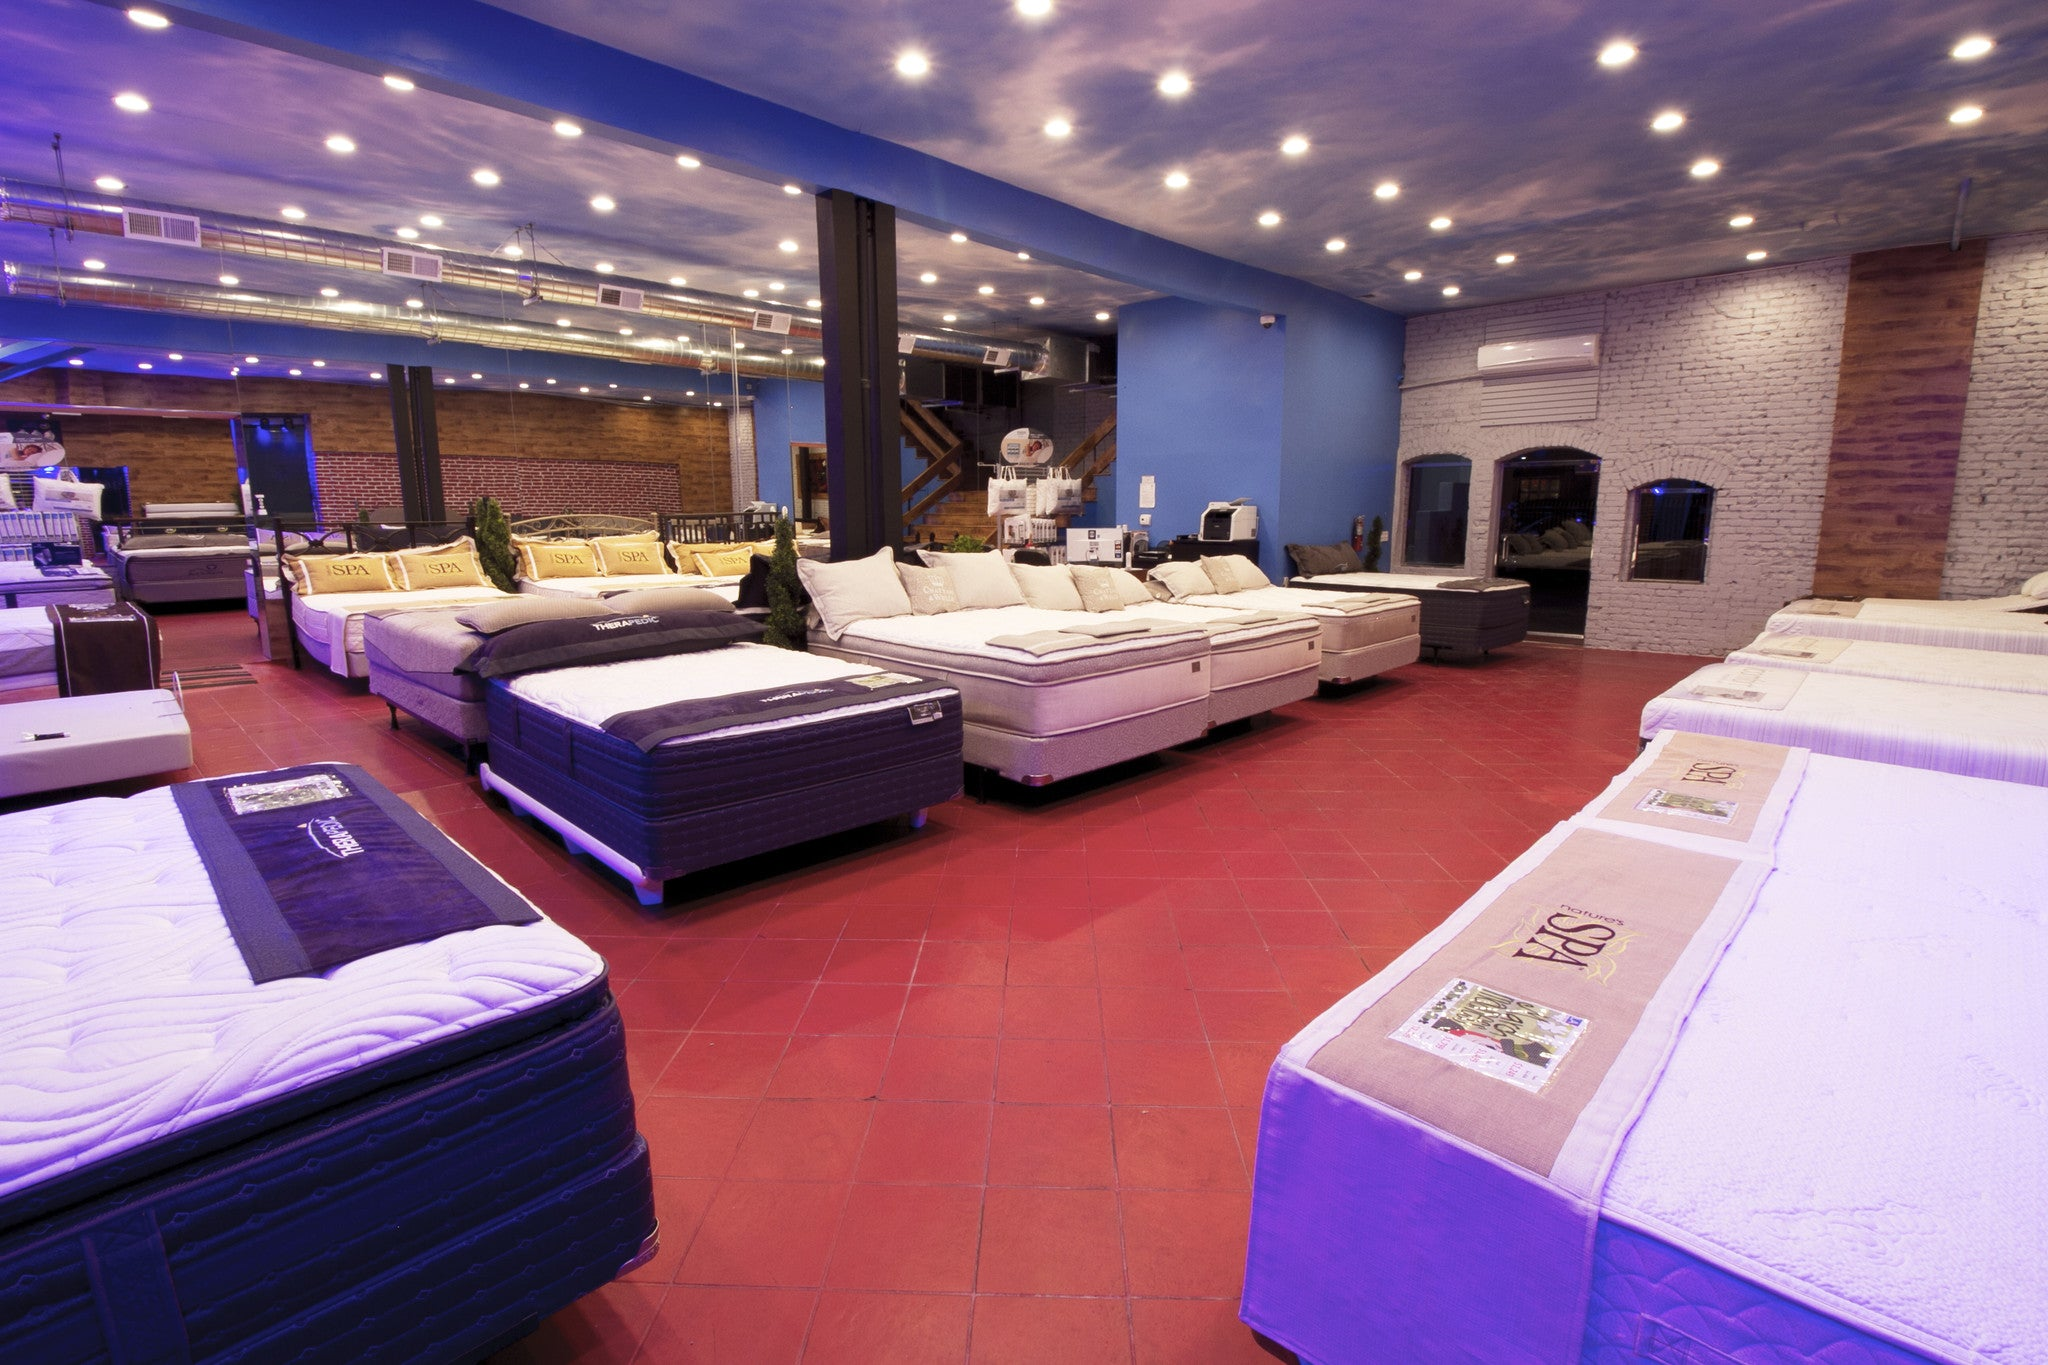 mattresses in koreatown visit our mattress store in koreatown ca los angeles mattress stores. Black Bedroom Furniture Sets. Home Design Ideas